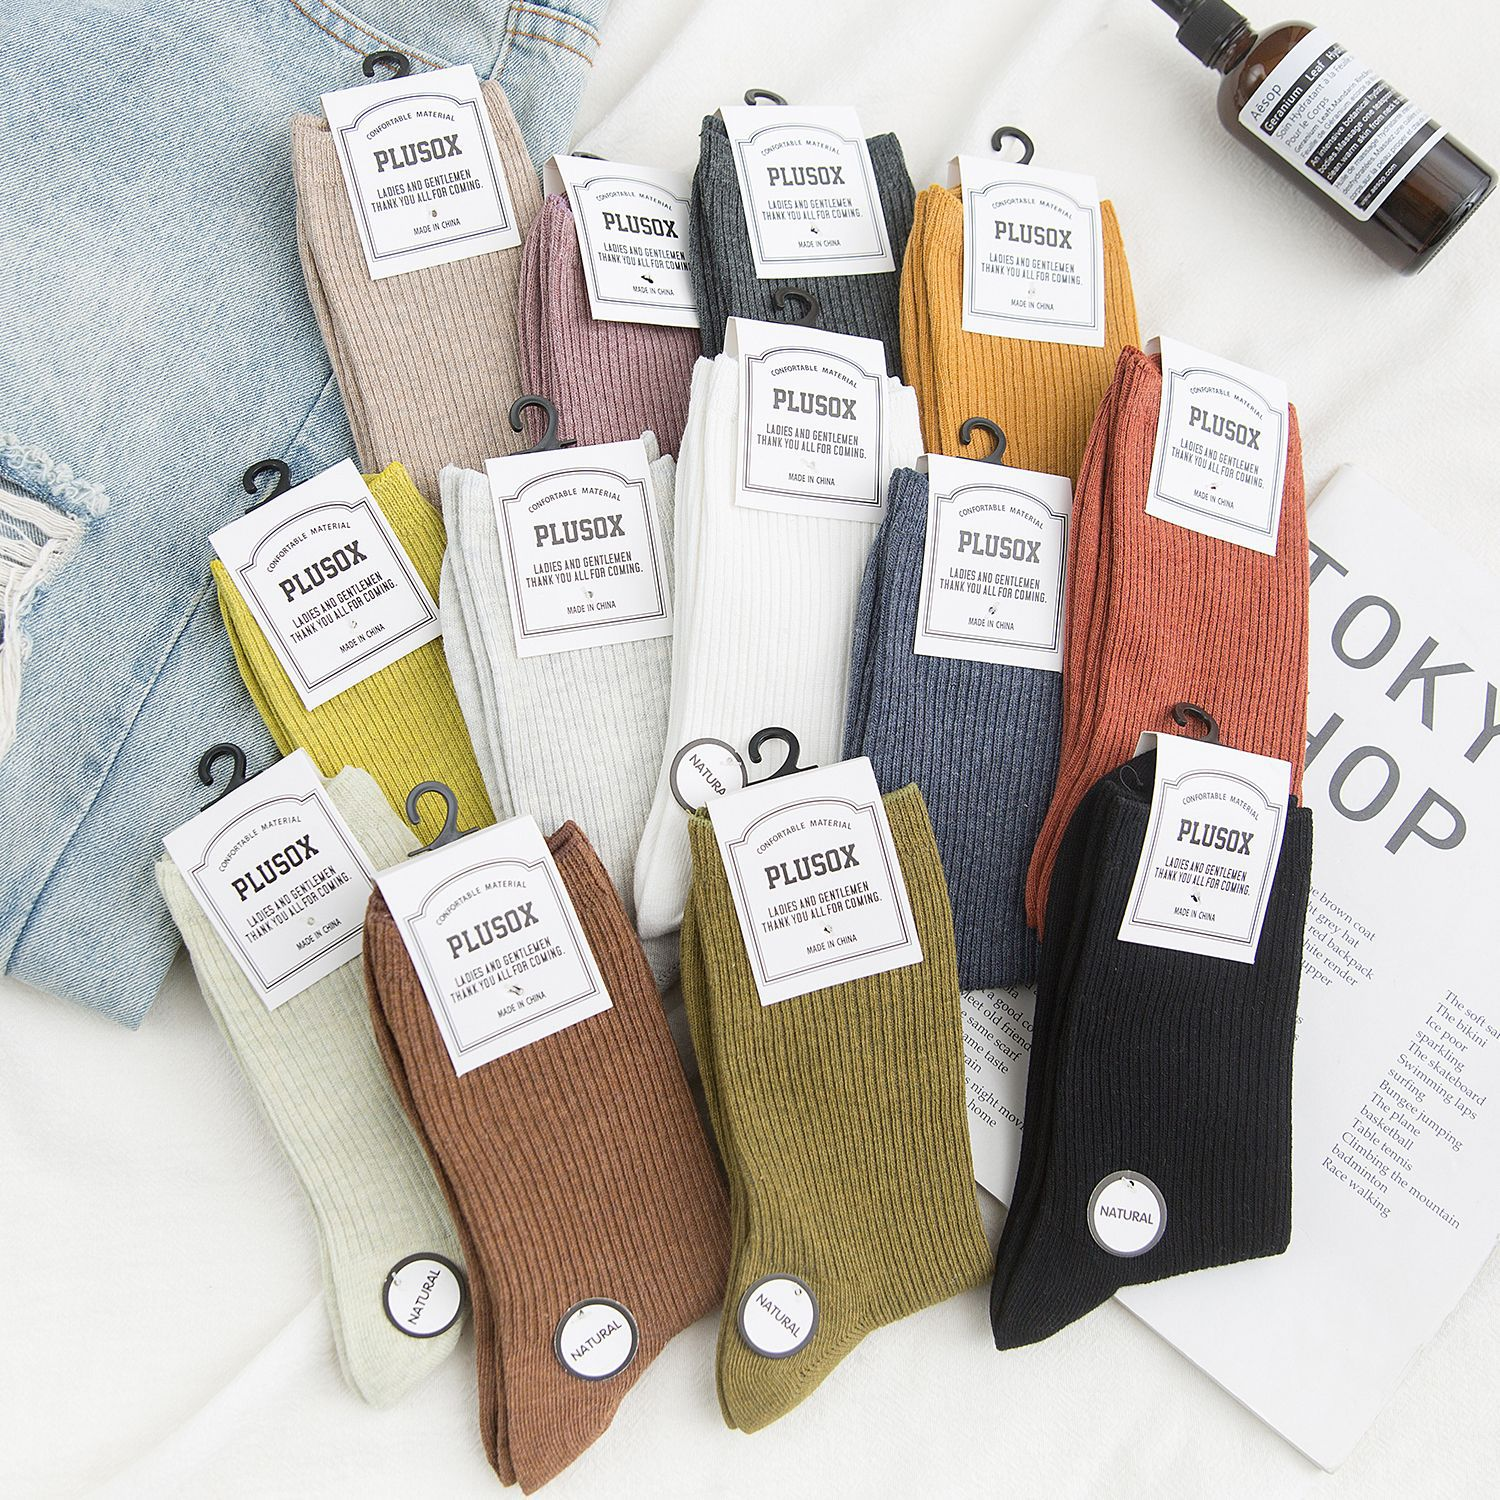 Socks Women's Autumn and Winter New Products Striped Solid Color Socks Socks Women Autumn All-match In Tube Pile Pile Socks socks women s summer thin section korean version of the tube socks velvet pile pile socks tide solid color curling ice ice socks